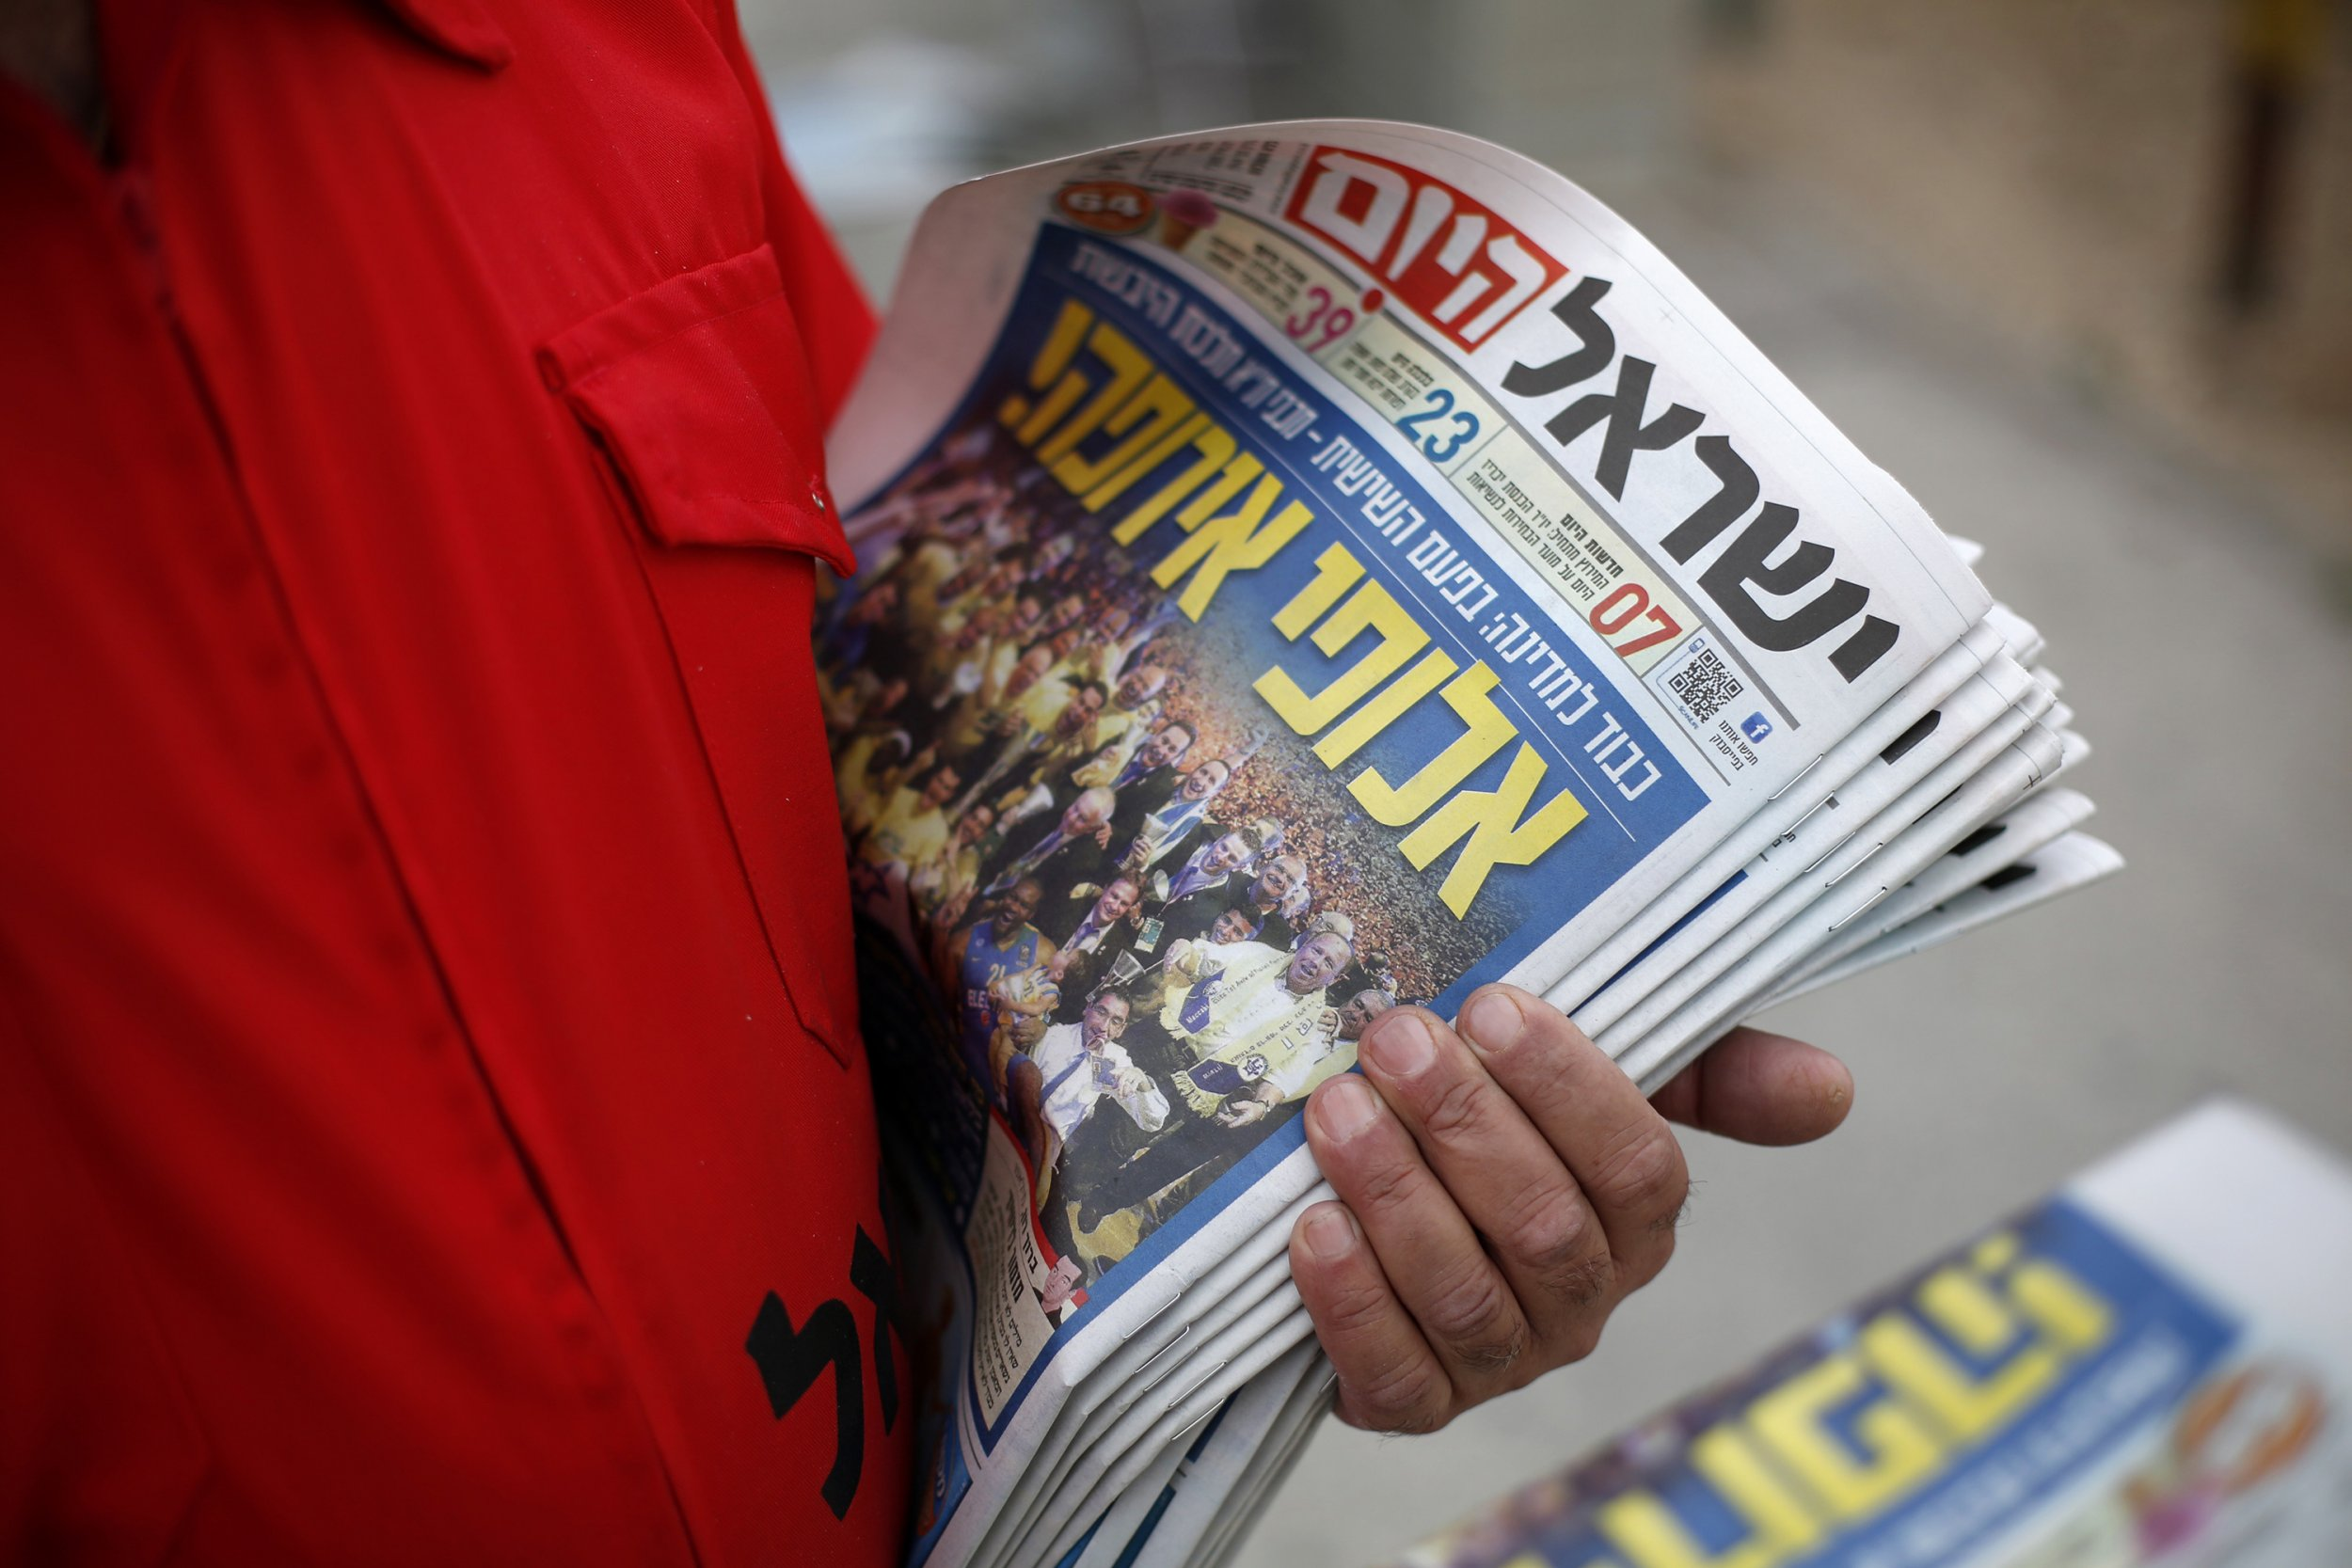 Israel Middle East Press Freedom